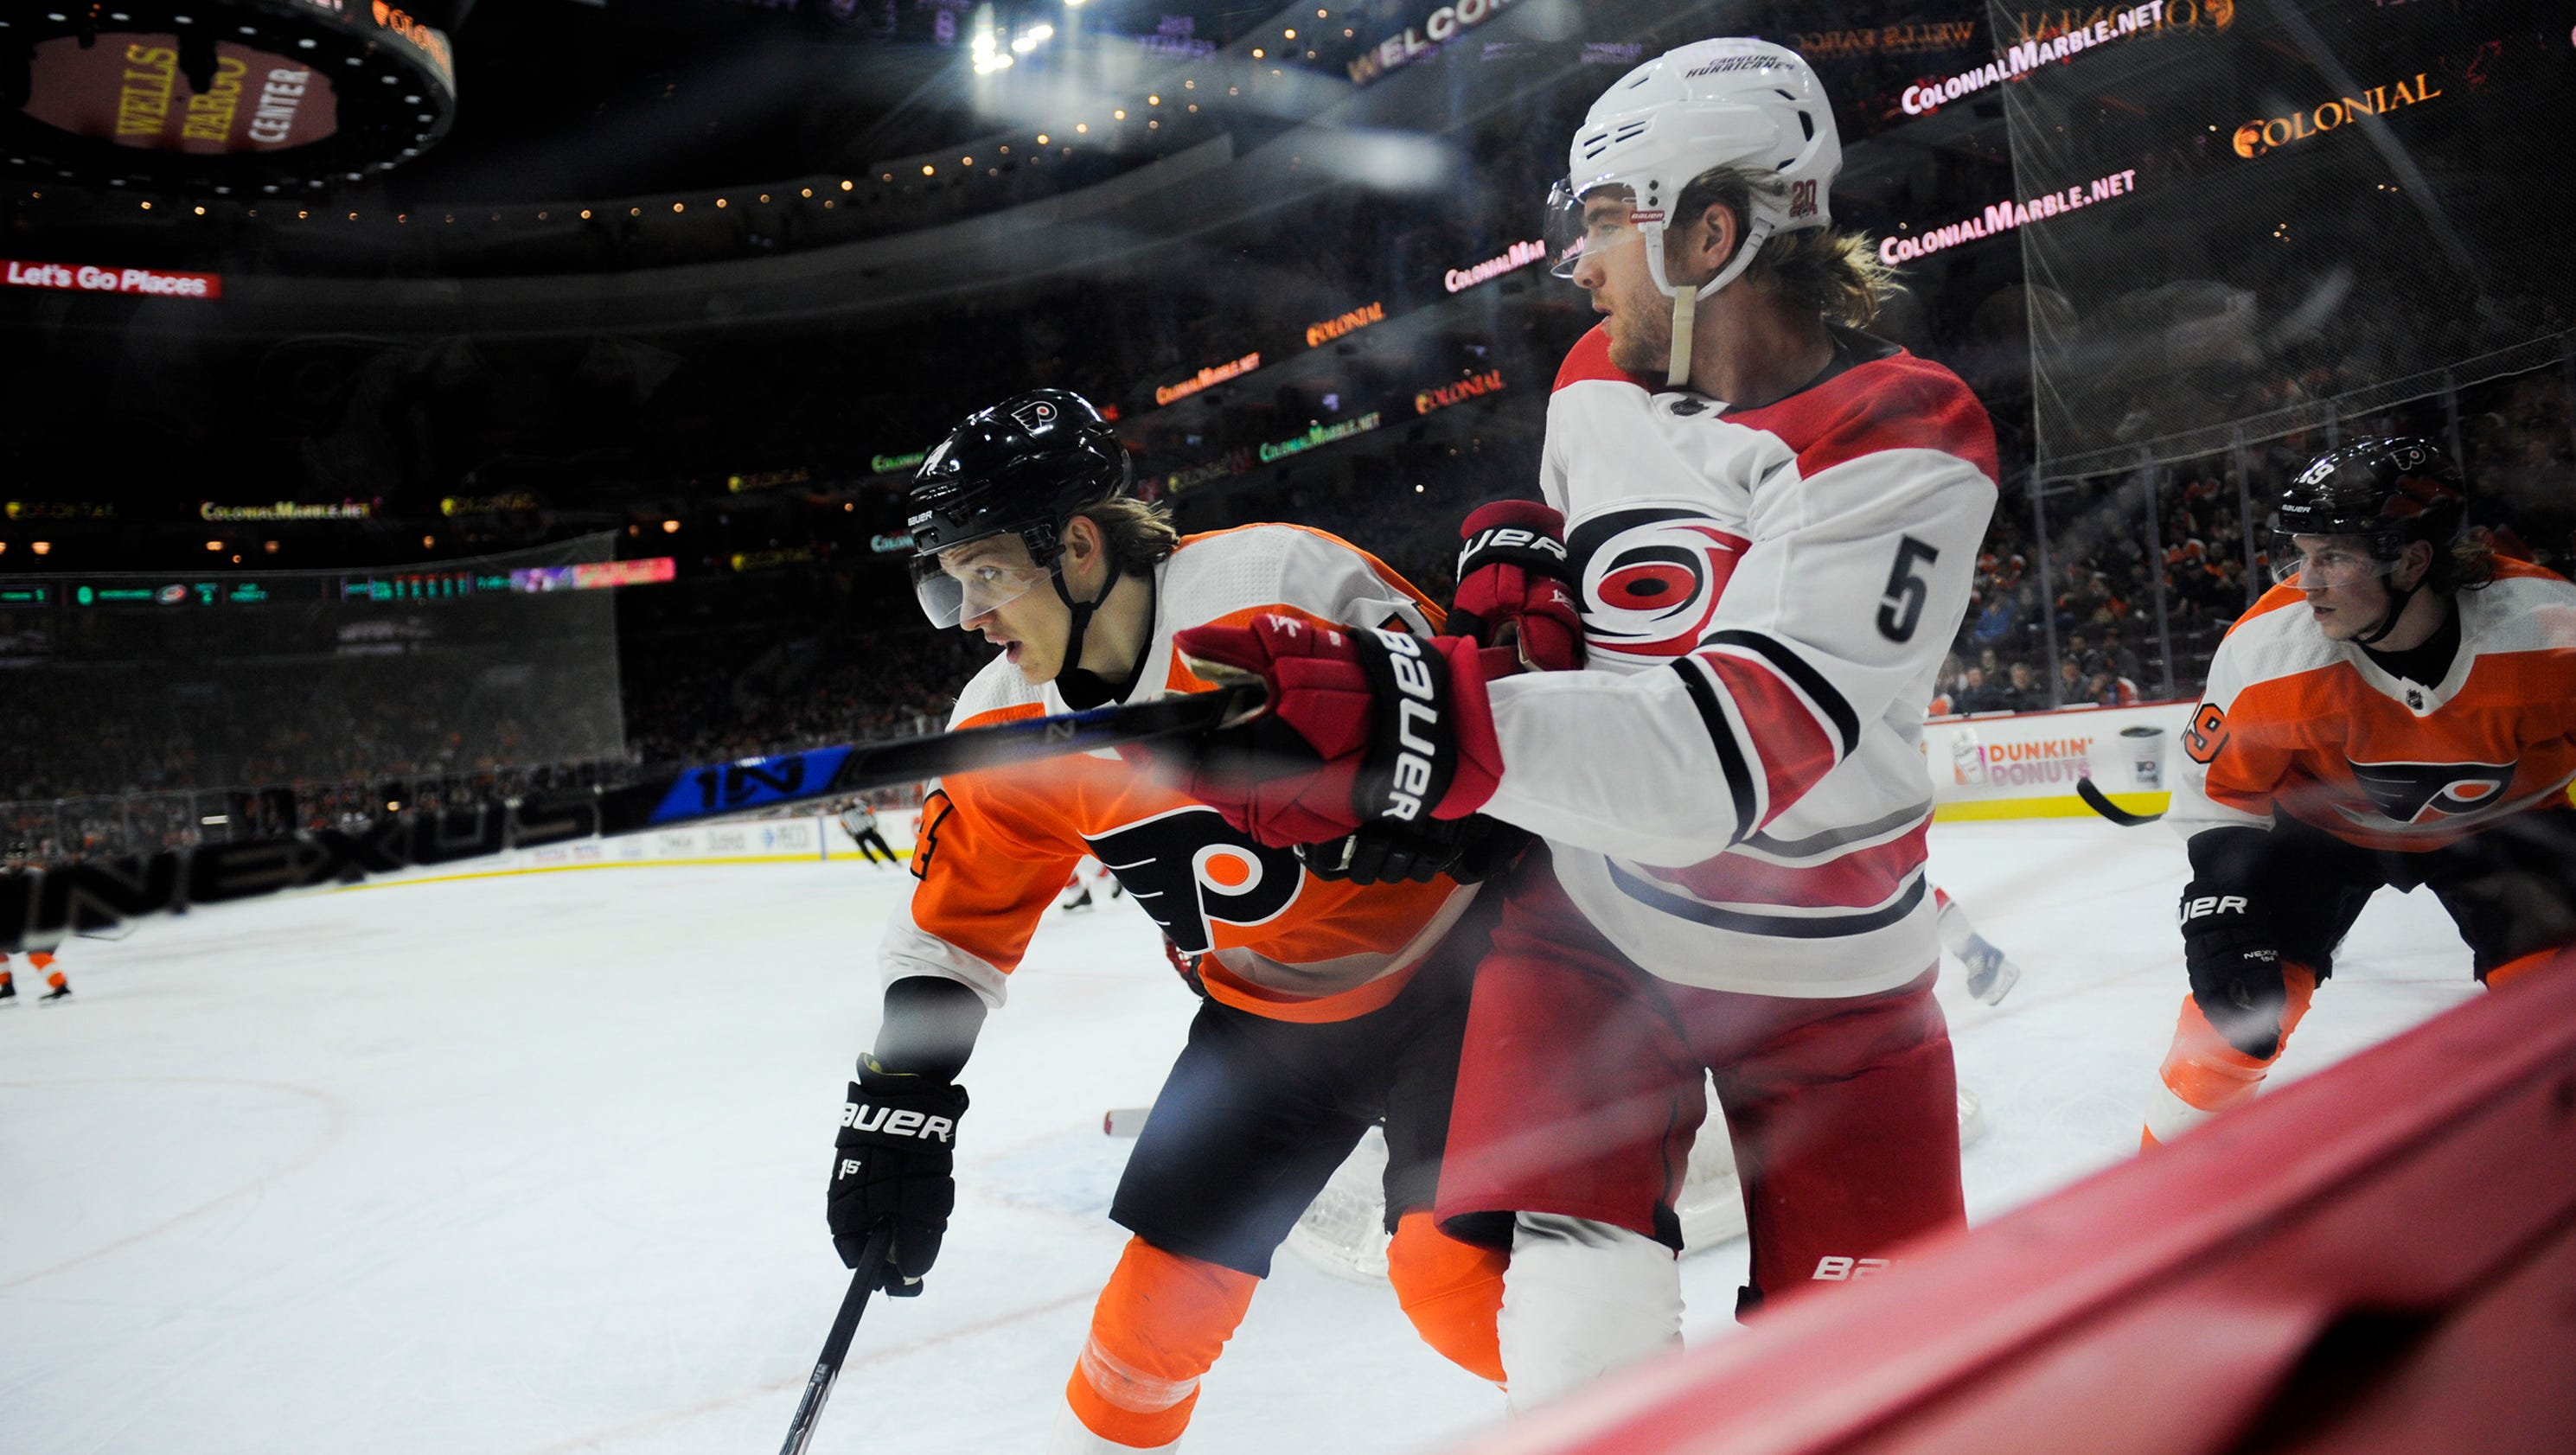 636585557553923239-flyers-hurricans-02